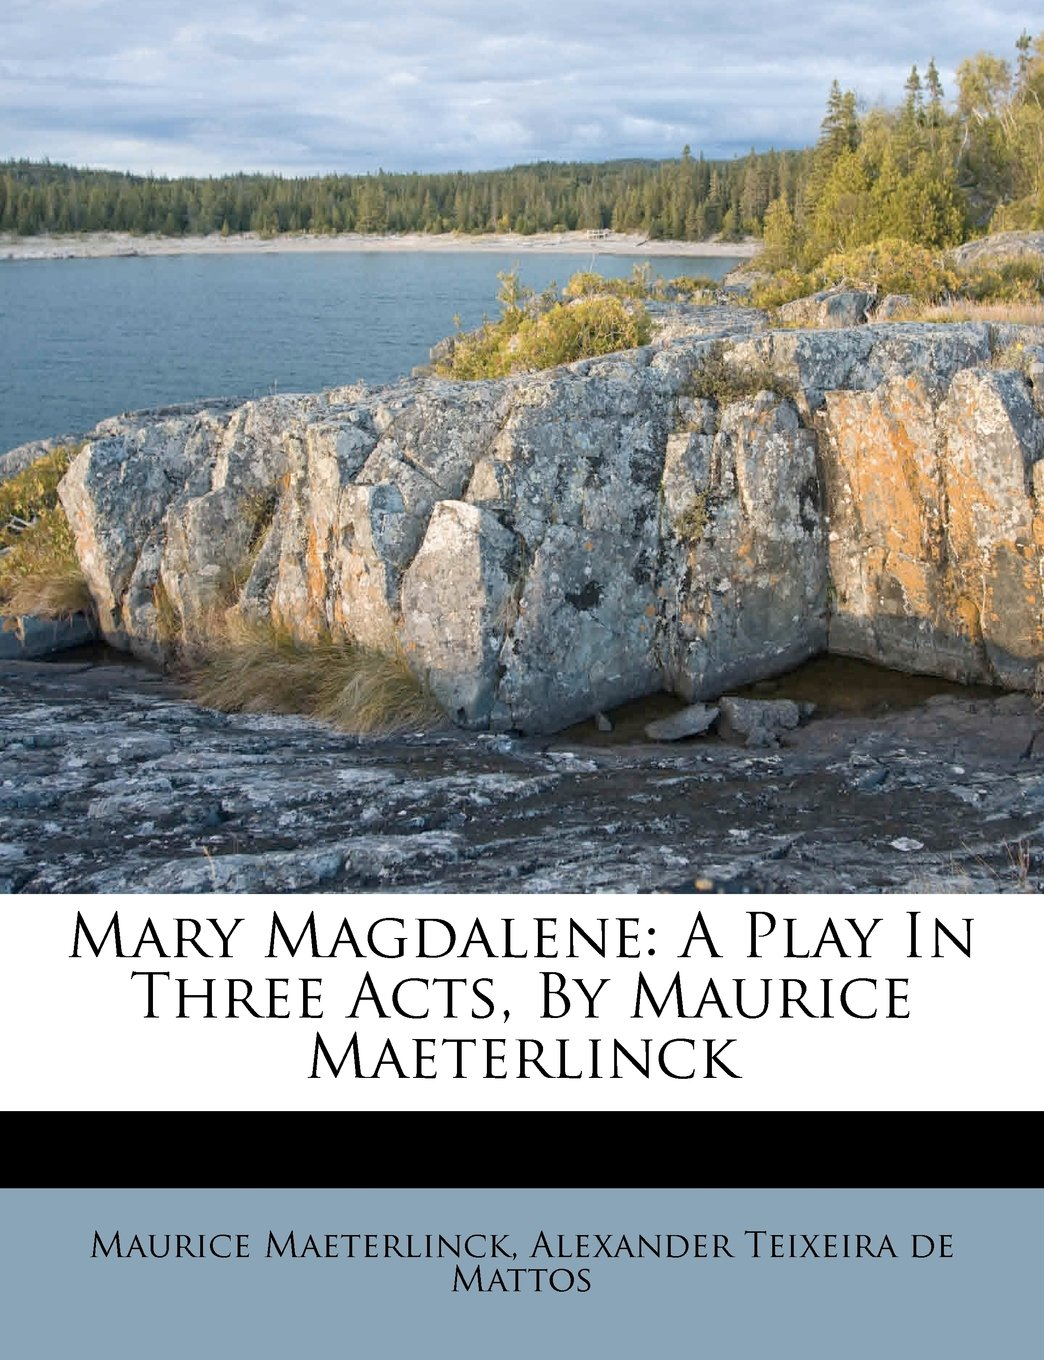 Mary Magdalene: A Play In Three Acts, By Maurice Maeterlinck pdf